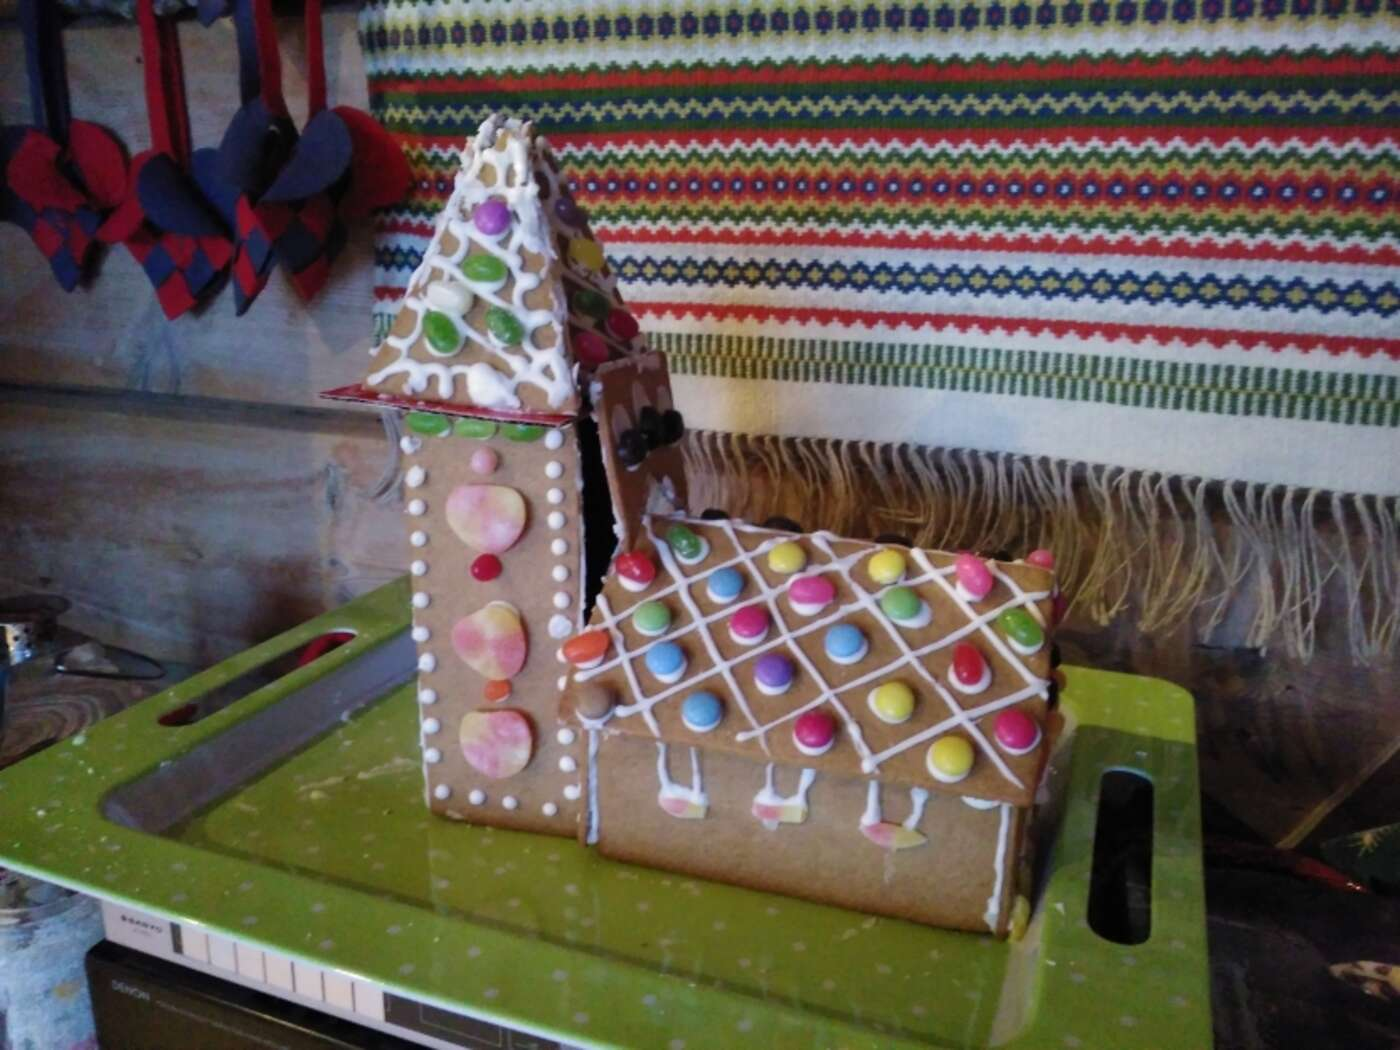 Our interesting gingerbread house